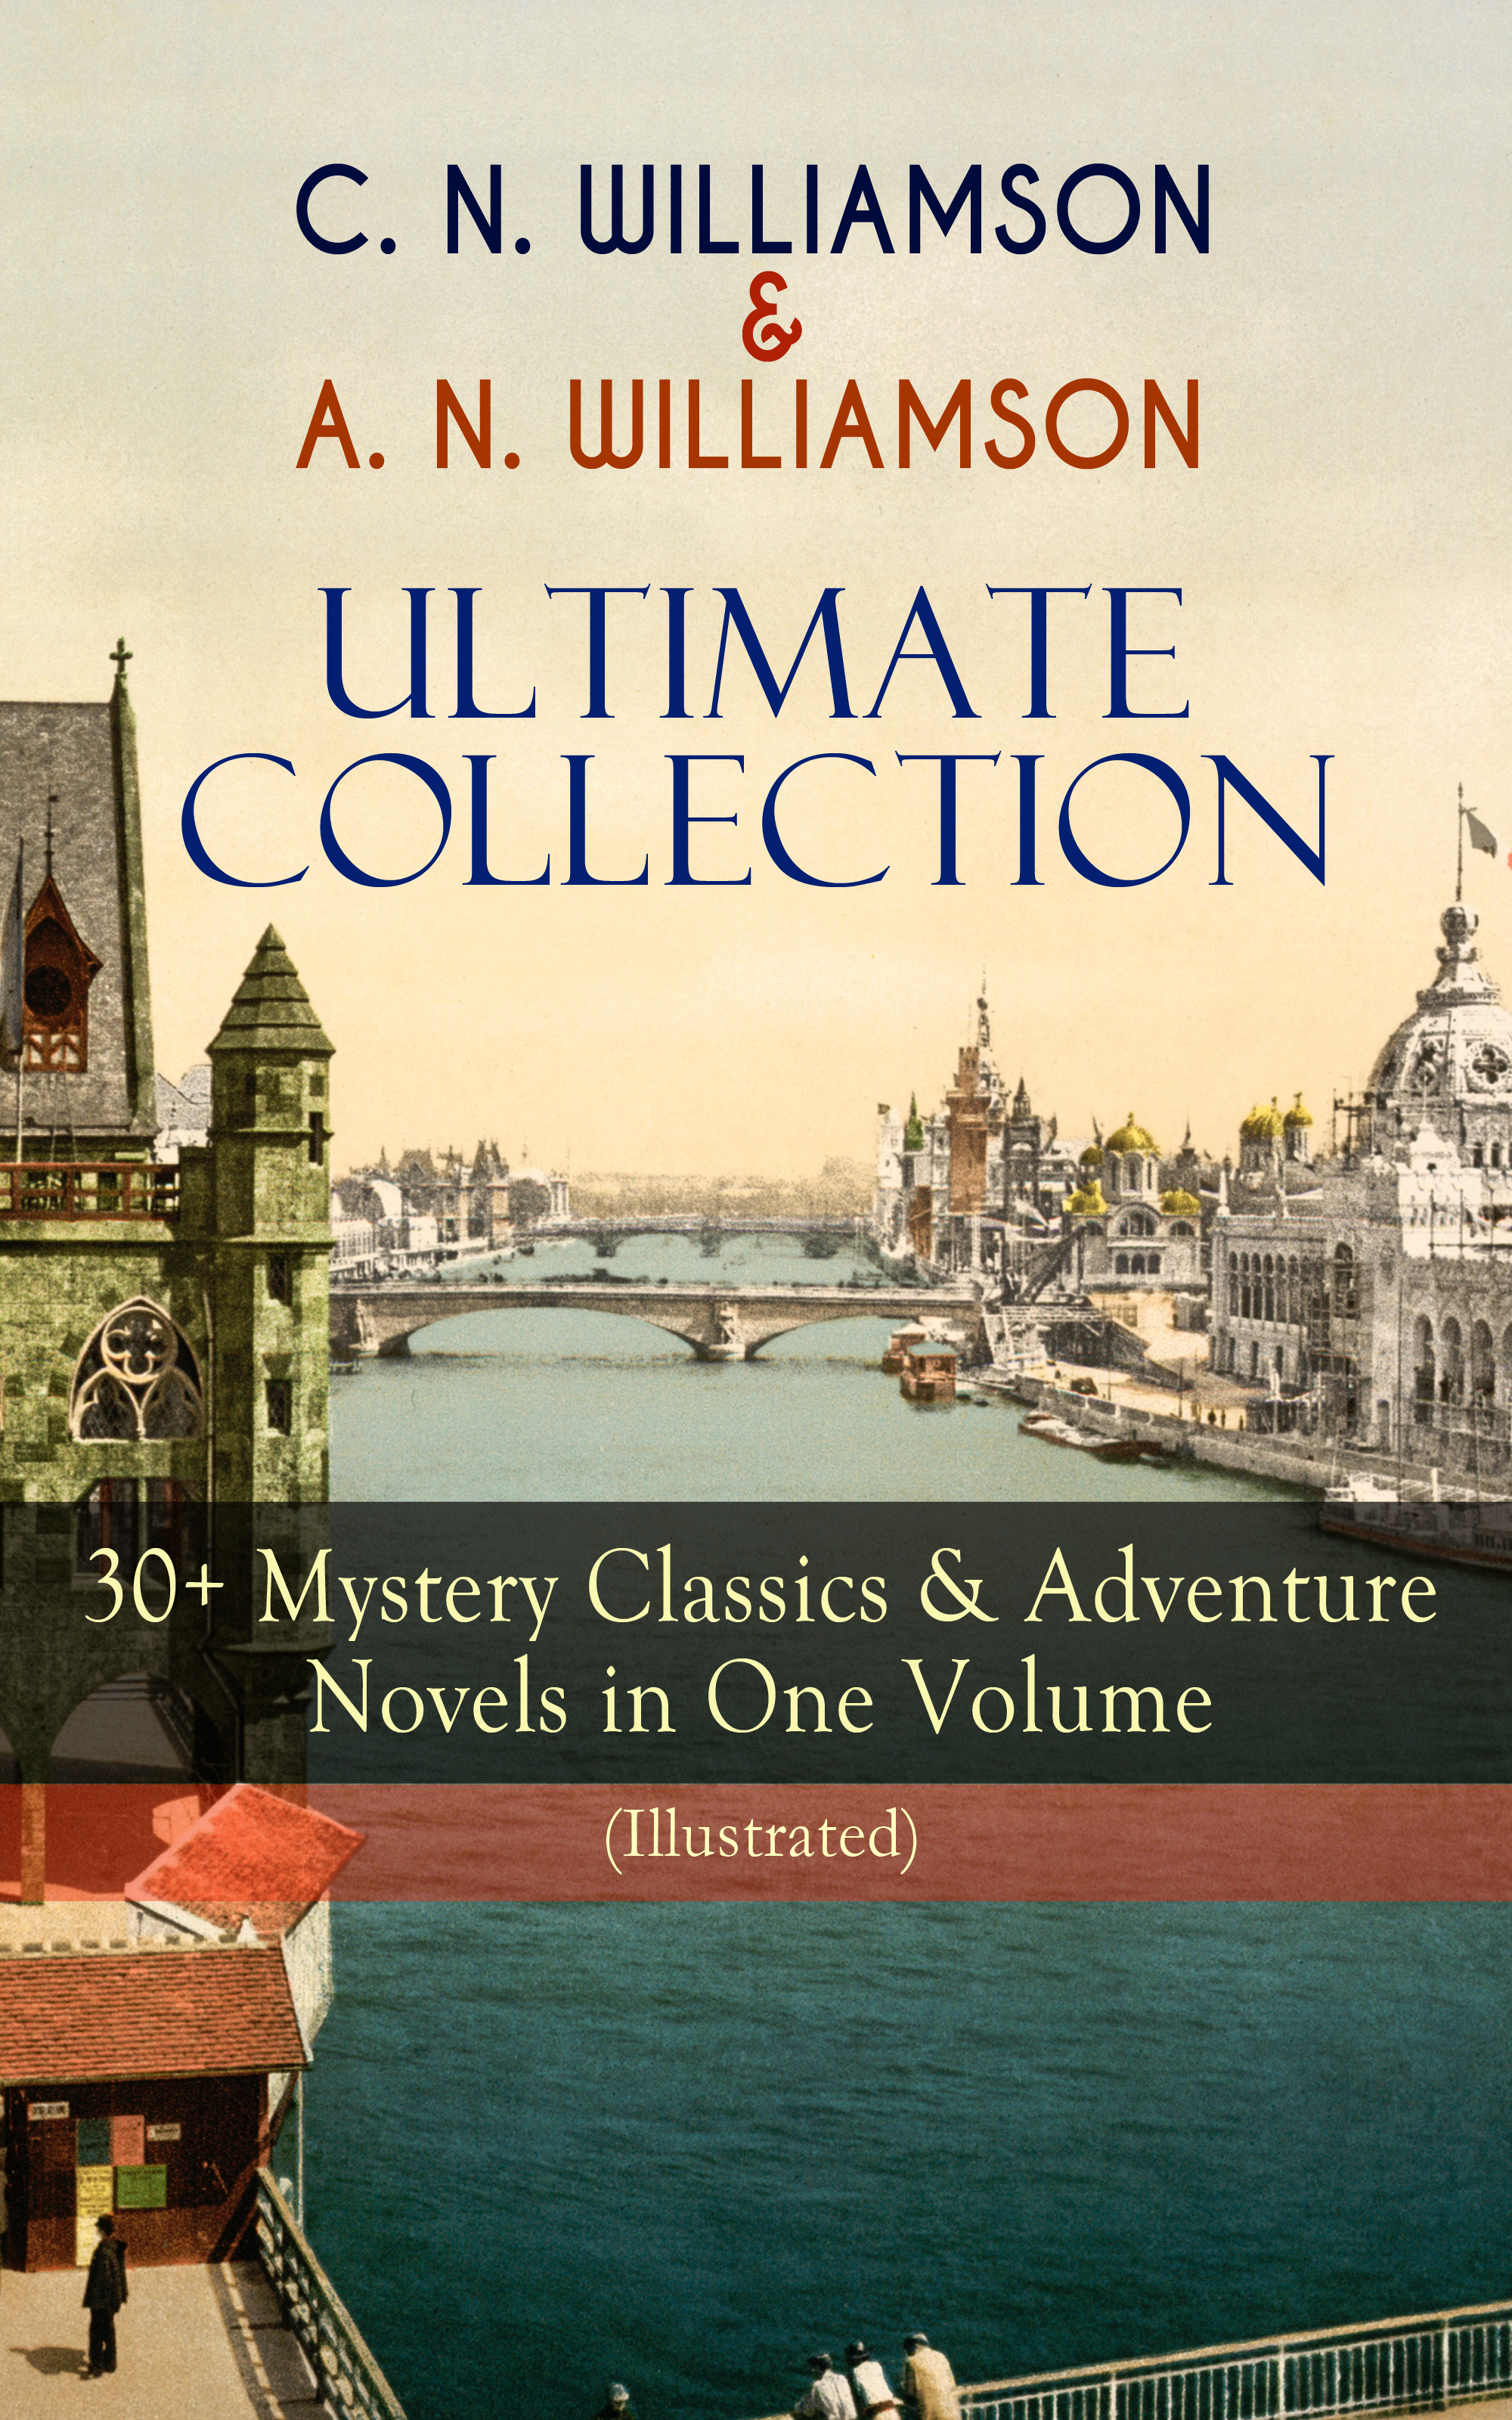 Charles Norris Williamson C. N. WILLIAMSON & A. N. WILLIAMSON Ultimate Collection: 30+ Mystery Classics & Adventure Novels in One Volume (Illustrated) цены онлайн